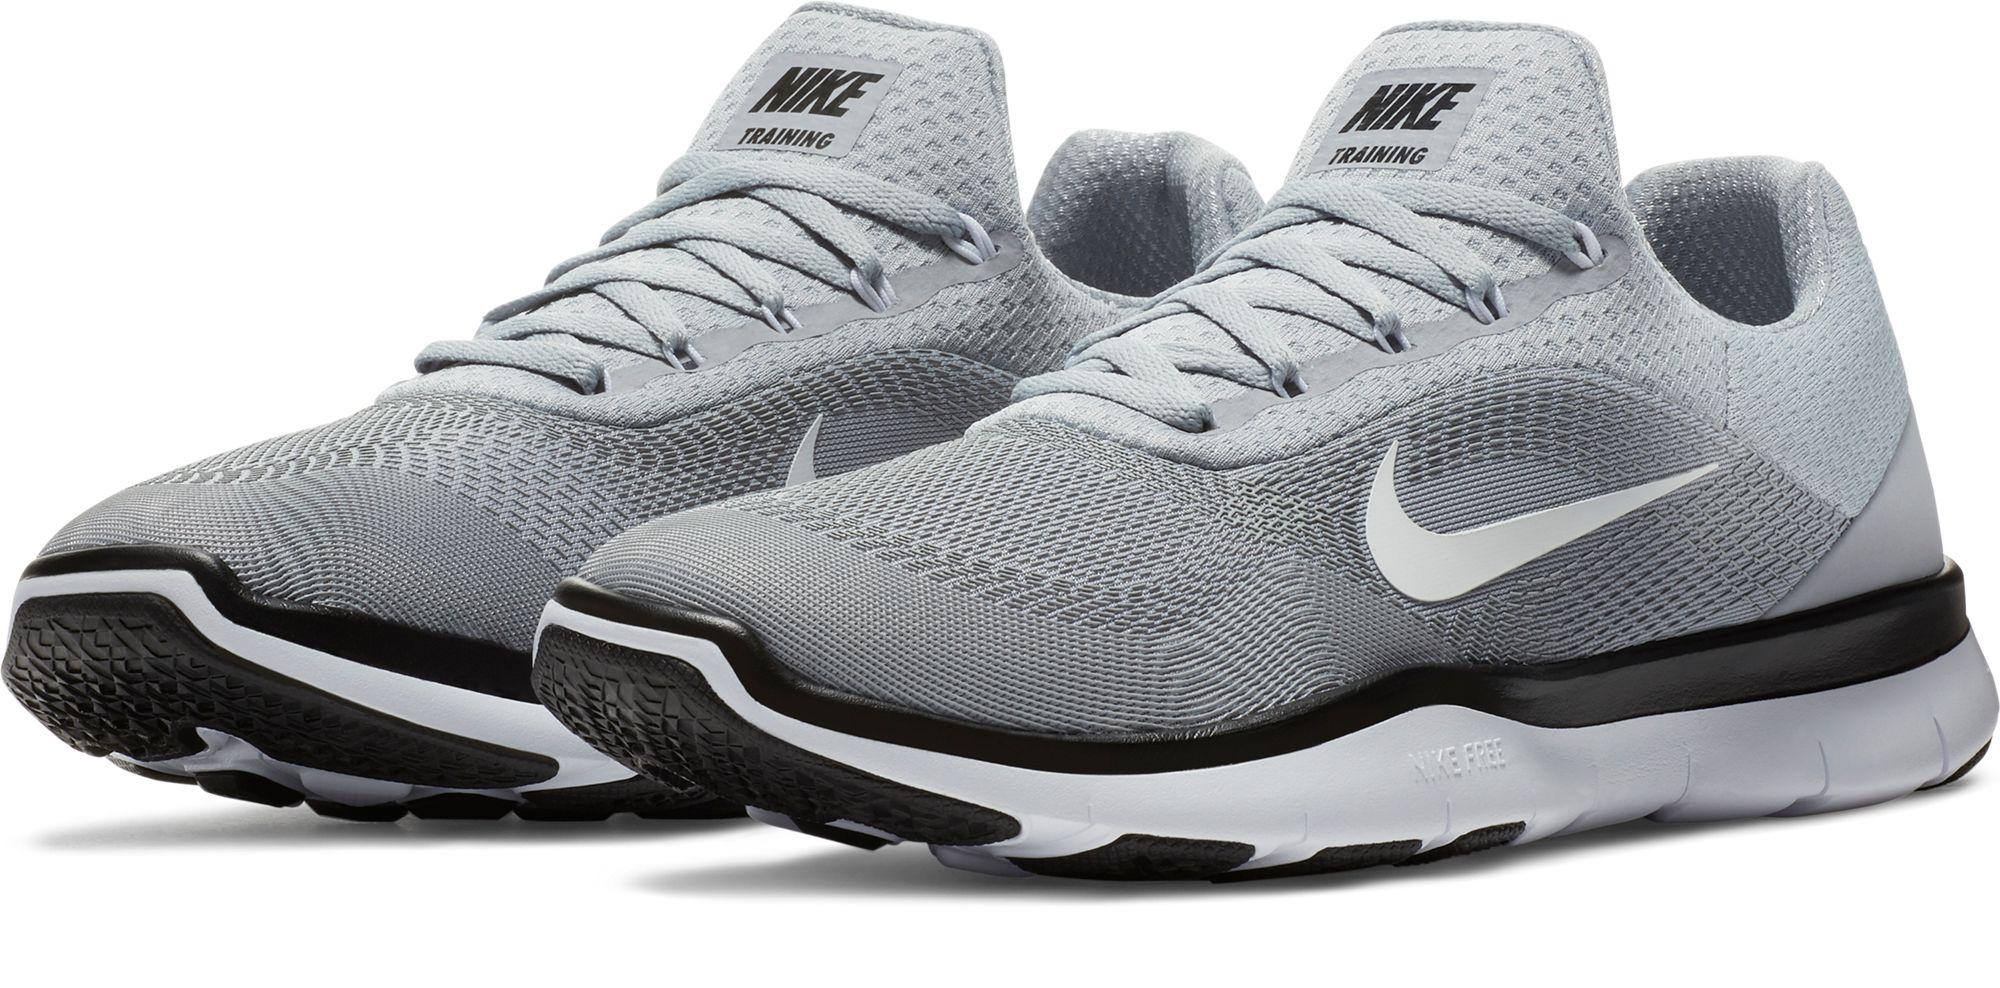 ab5db4cbed Nike Free Trainer V7 Tb Training Shoes in Gray for Men - Lyst